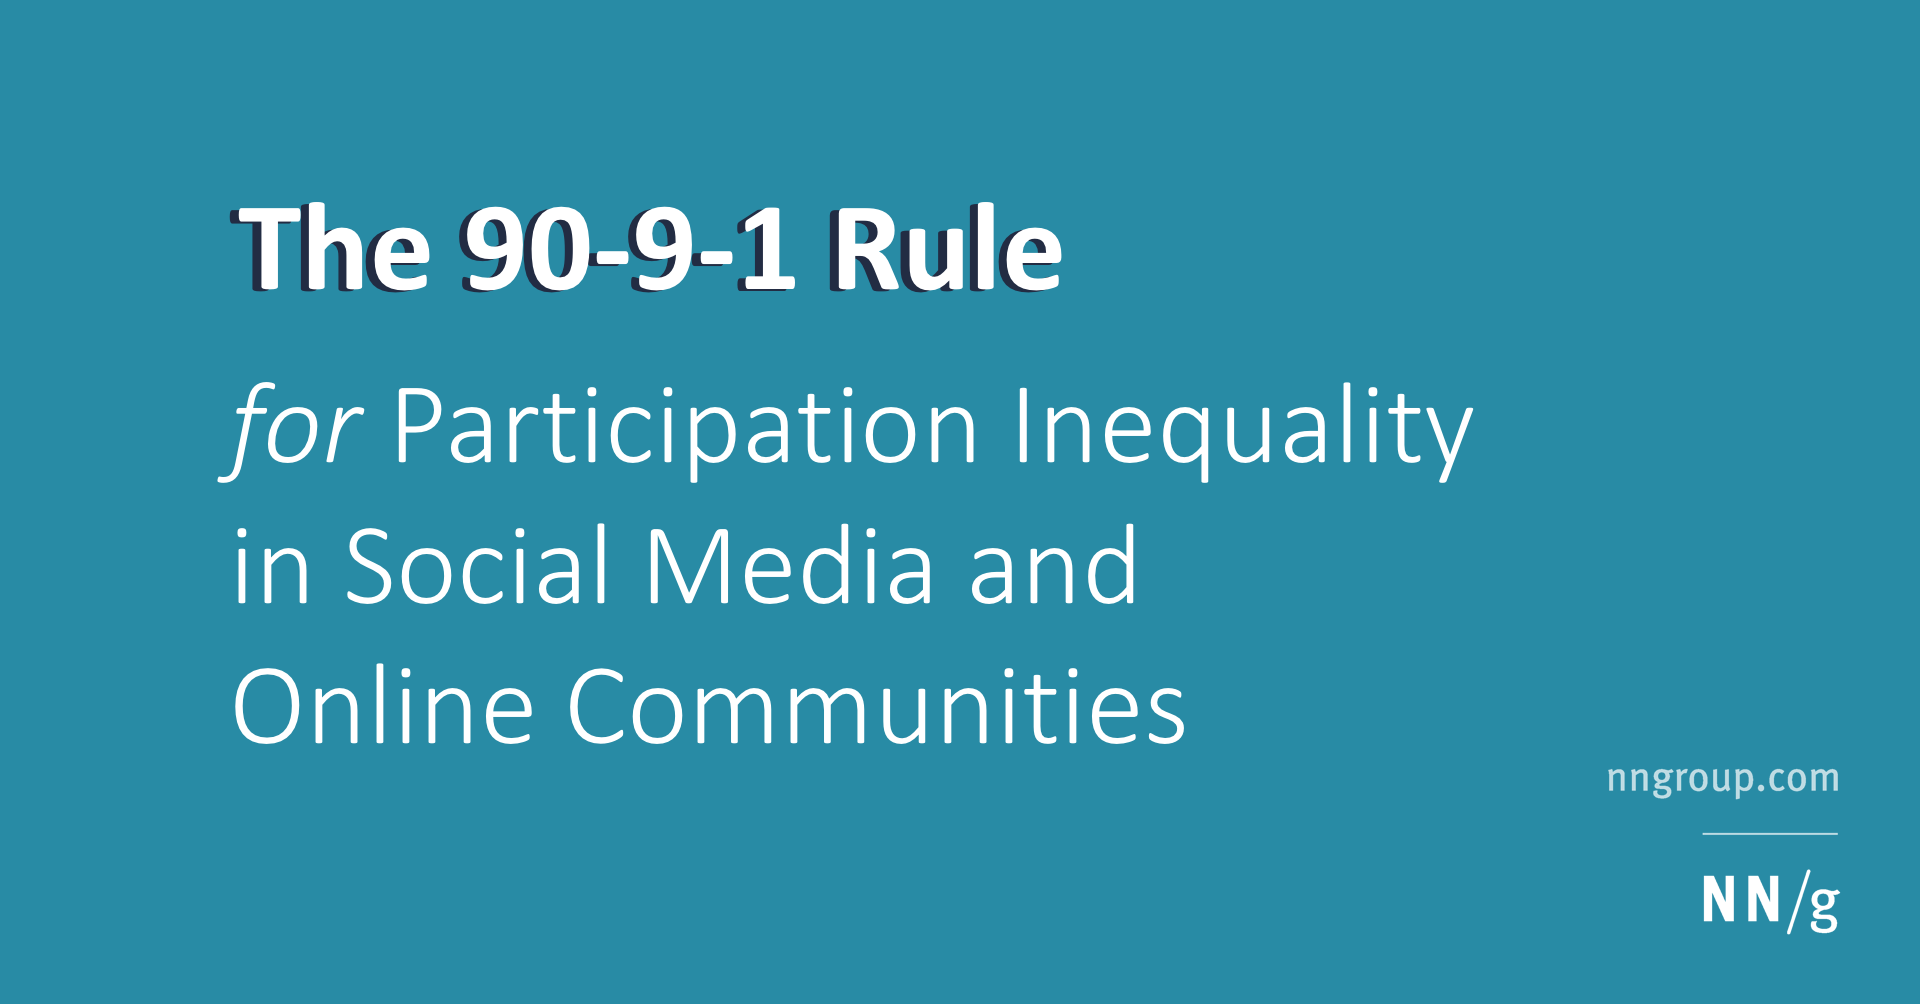 Participation Inequality: The 90-9-1 Rule for Social Features